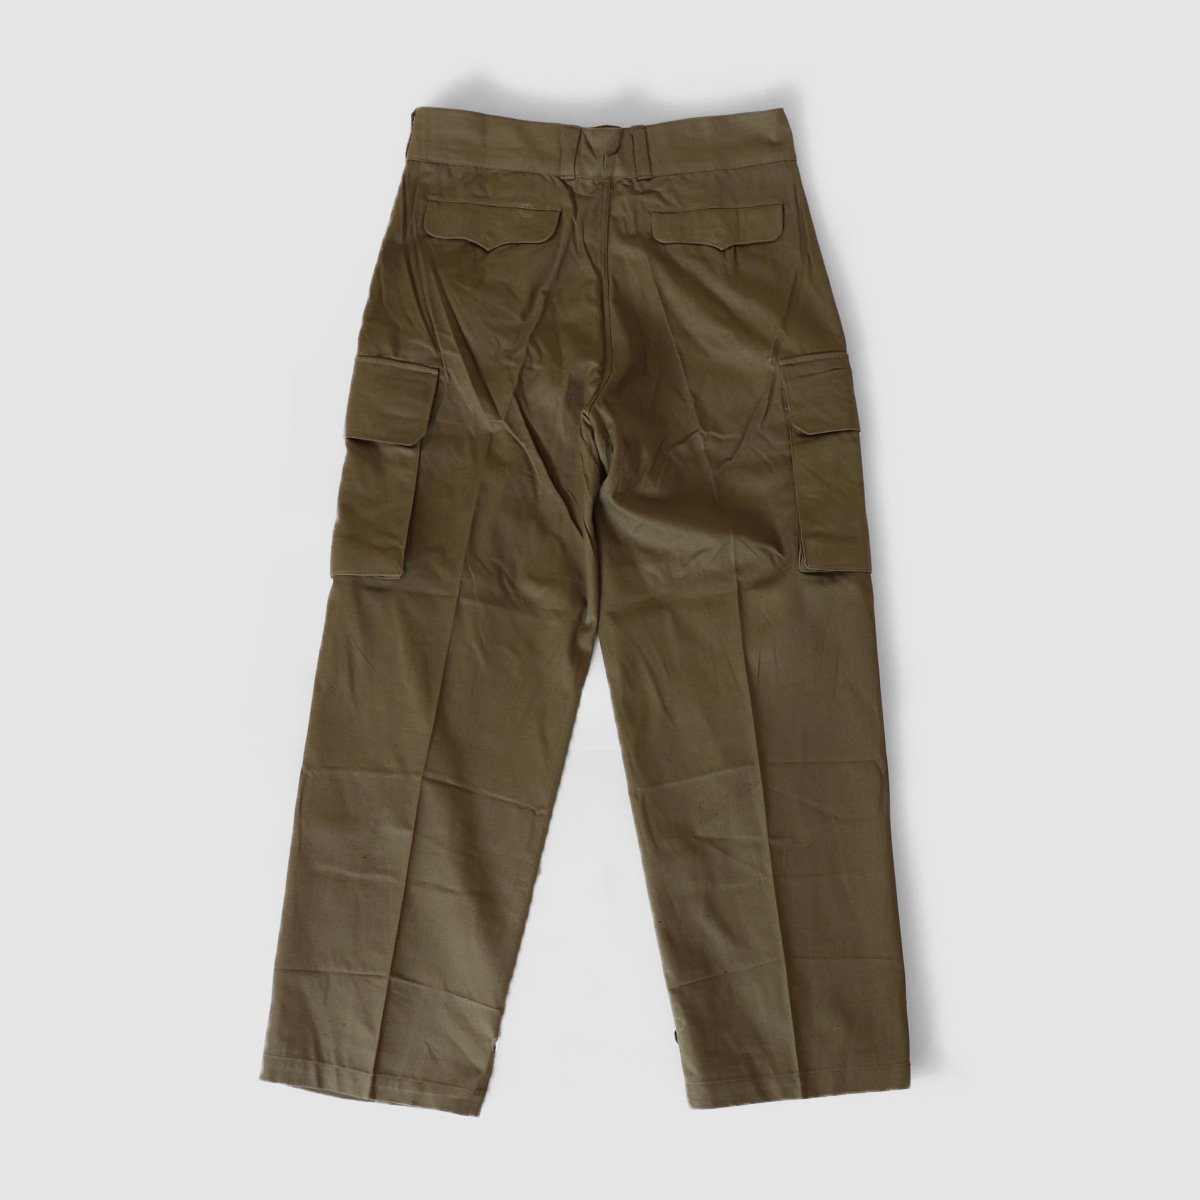 FRENCH ARMY M47 PANTS 詳細画像2